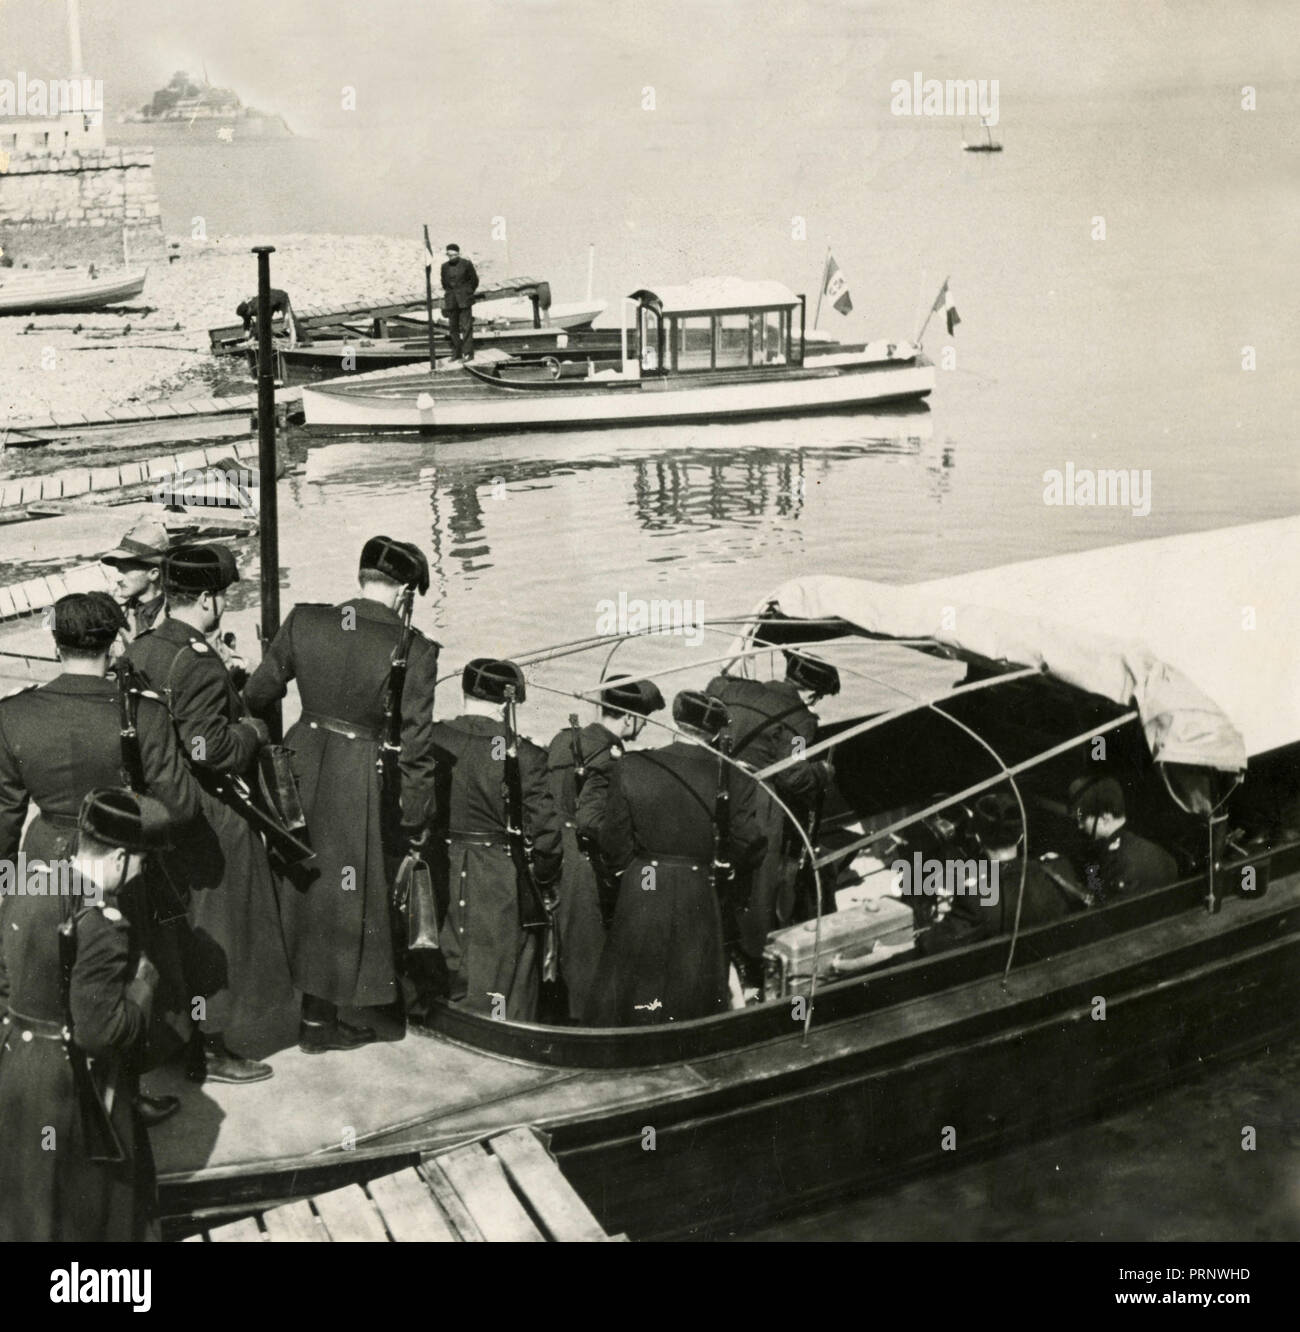 Russian soldiers boarding a boat, 1930s - Stock Image